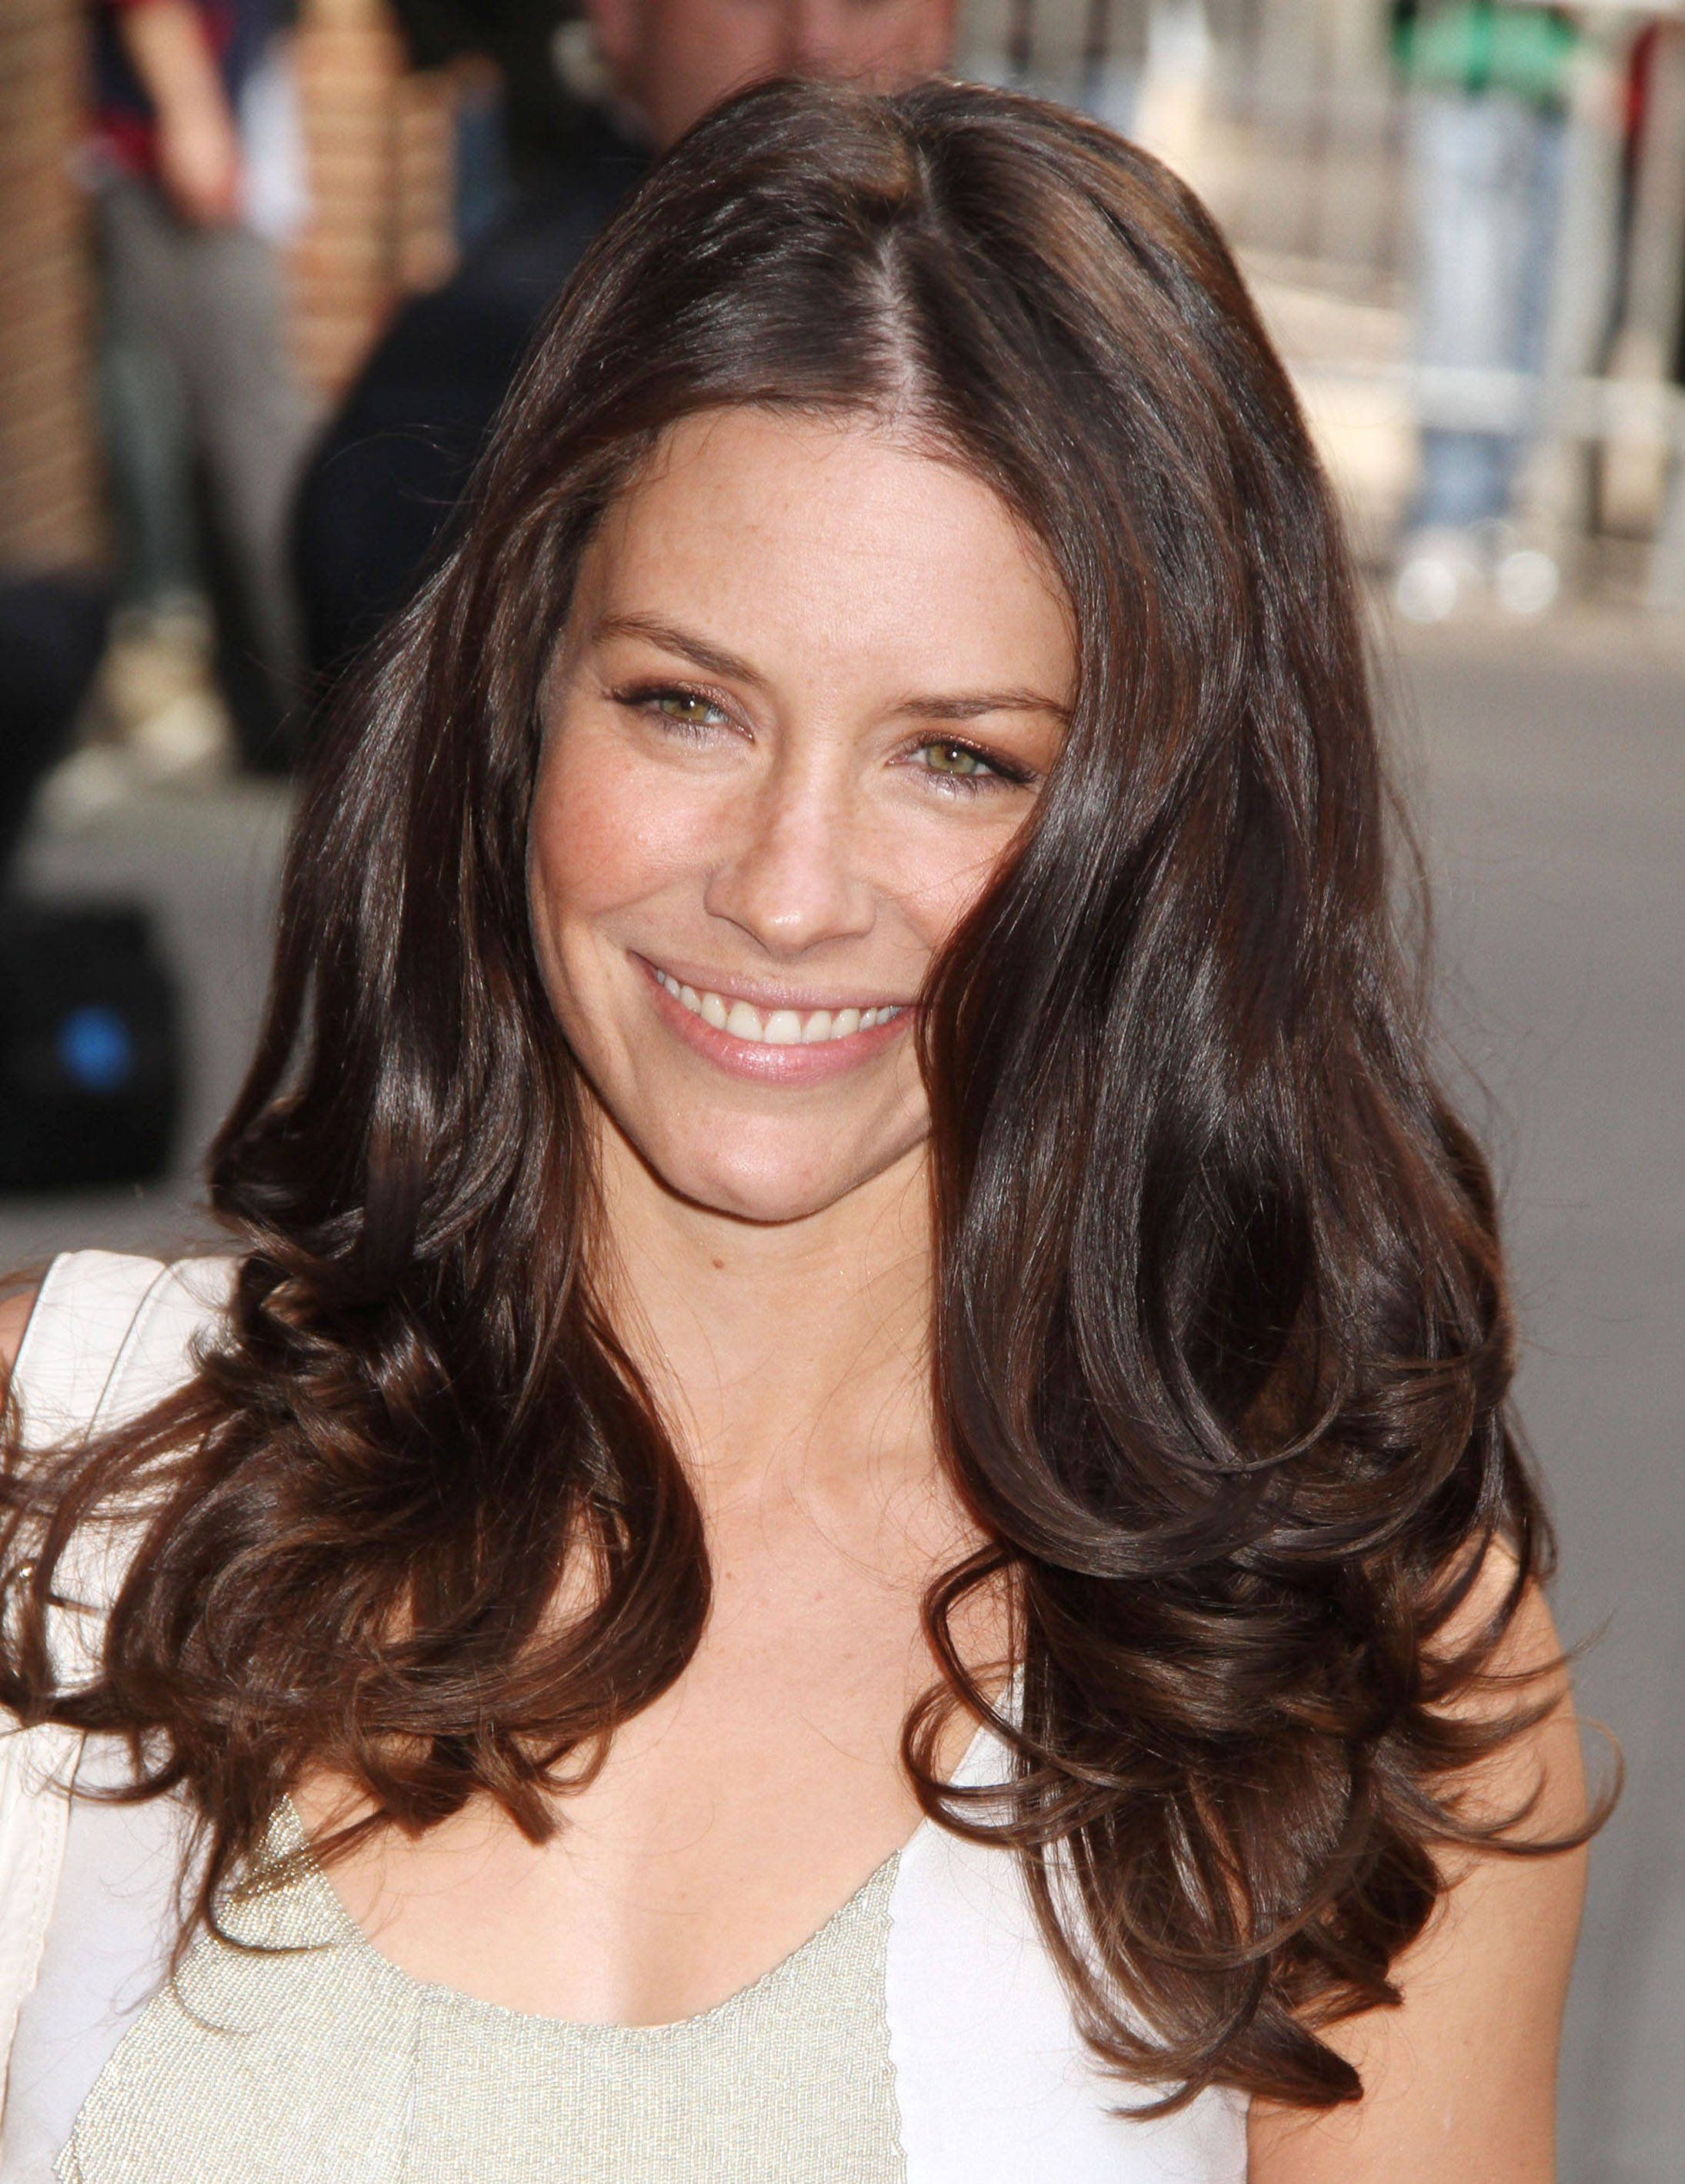 Evangeline Lilly Tied Up